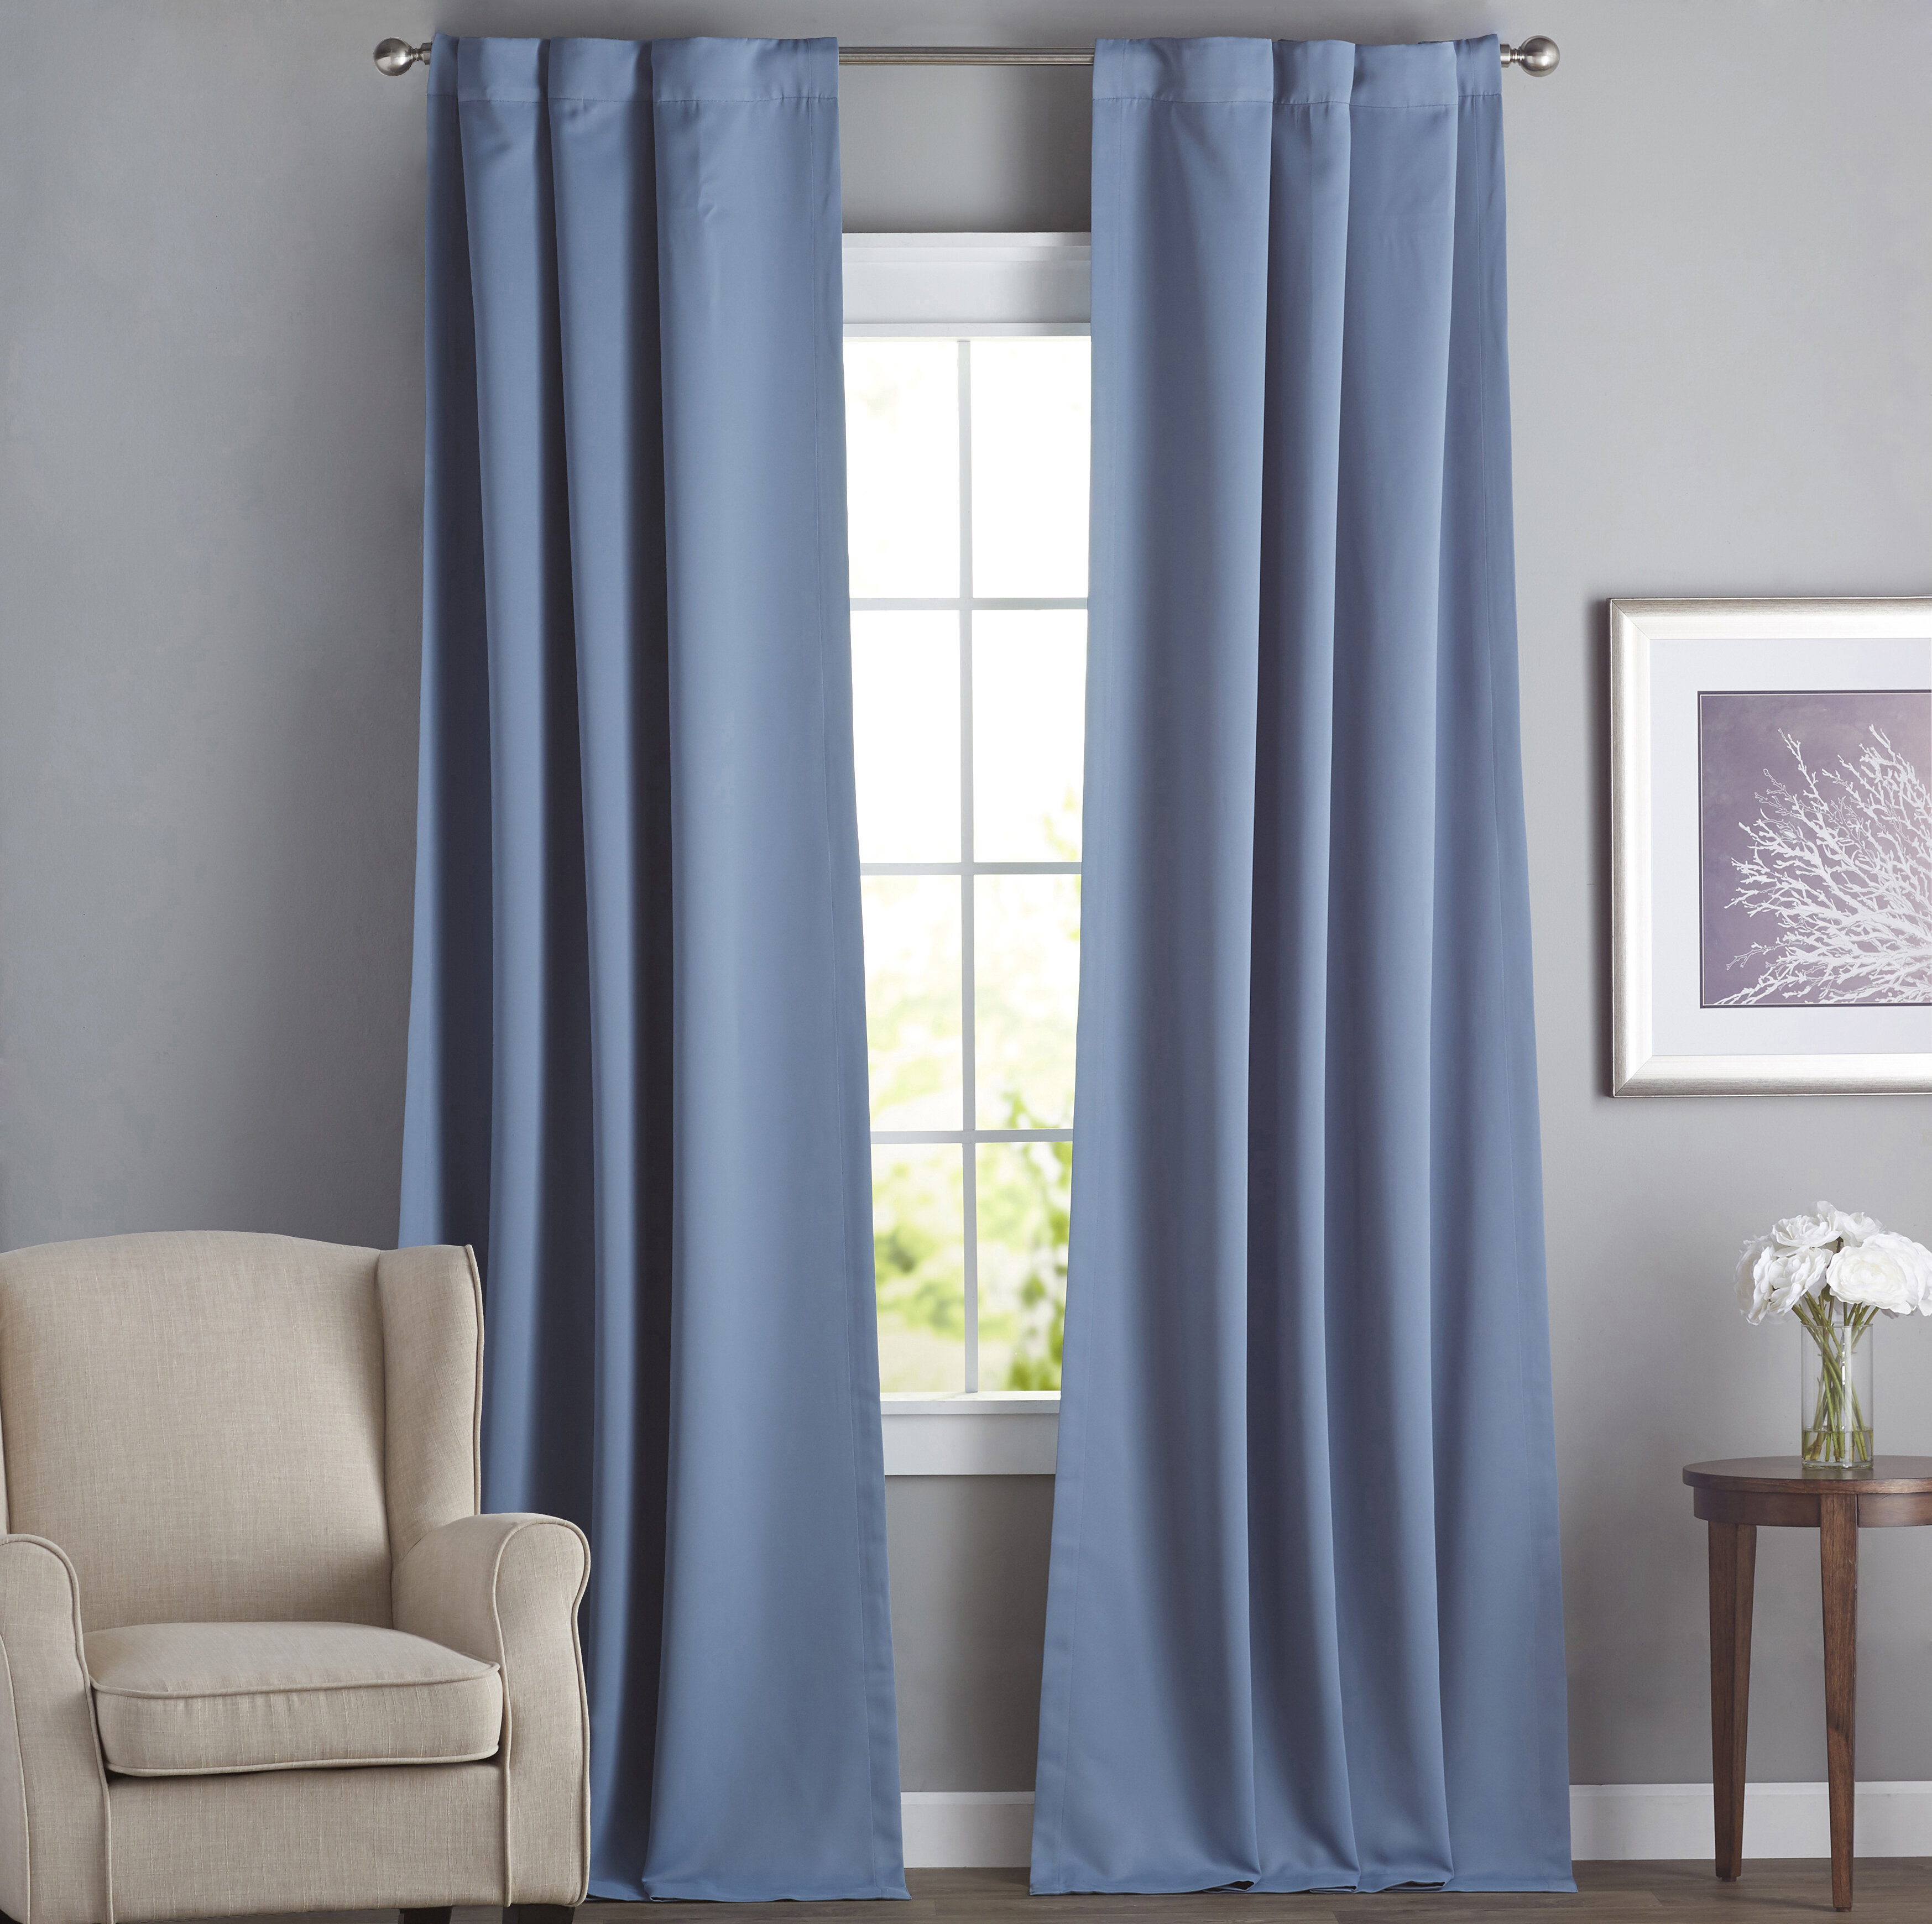 Cairo Solid Room Darkening Thermal Rod Pocket Panel Pair Inside Solid Thermal Insulated Blackout Curtain Panel Pairs (View 11 of 30)